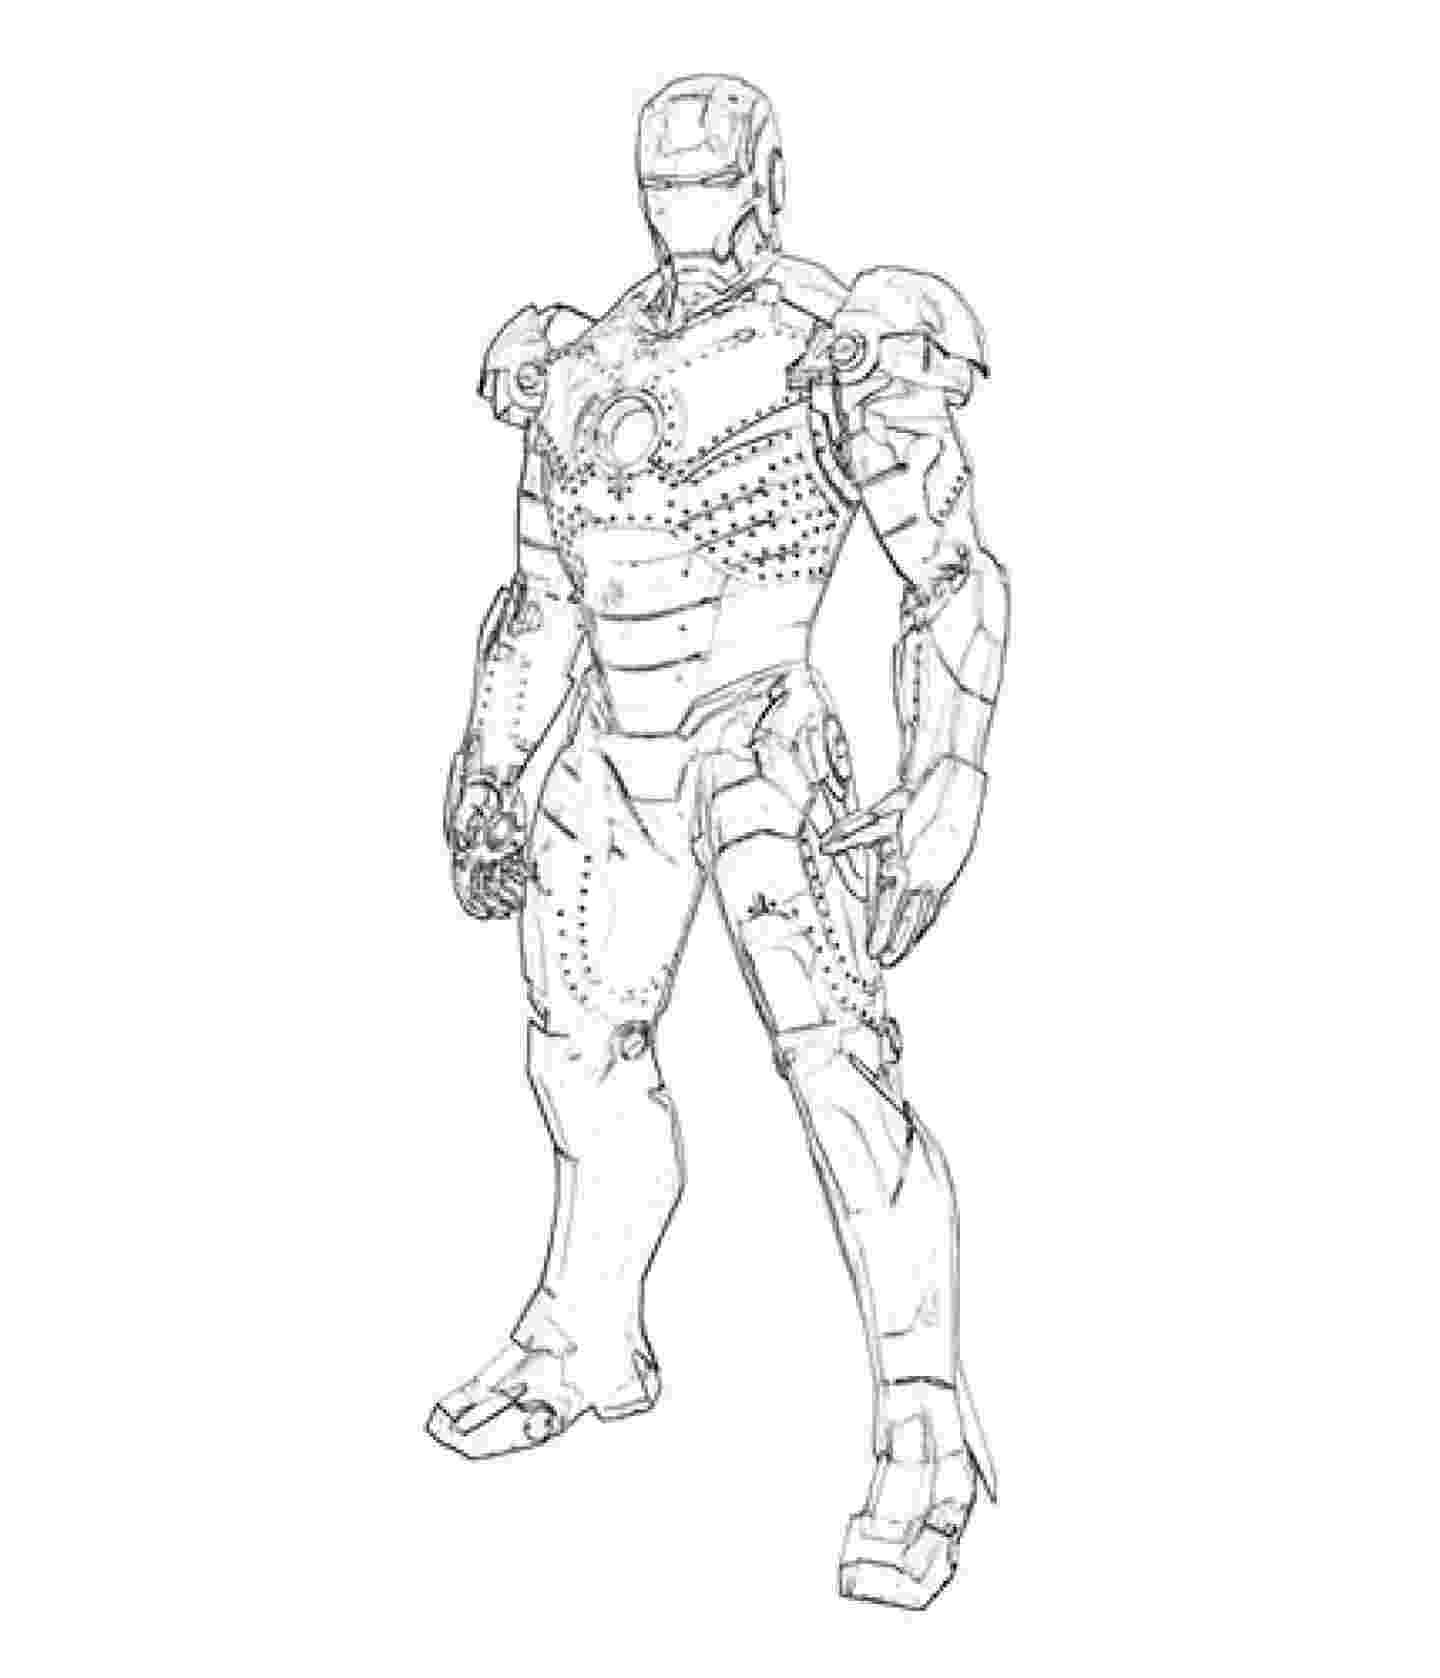 ironman colouring free printable iron man coloring pages for kids cool2bkids ironman colouring 1 2